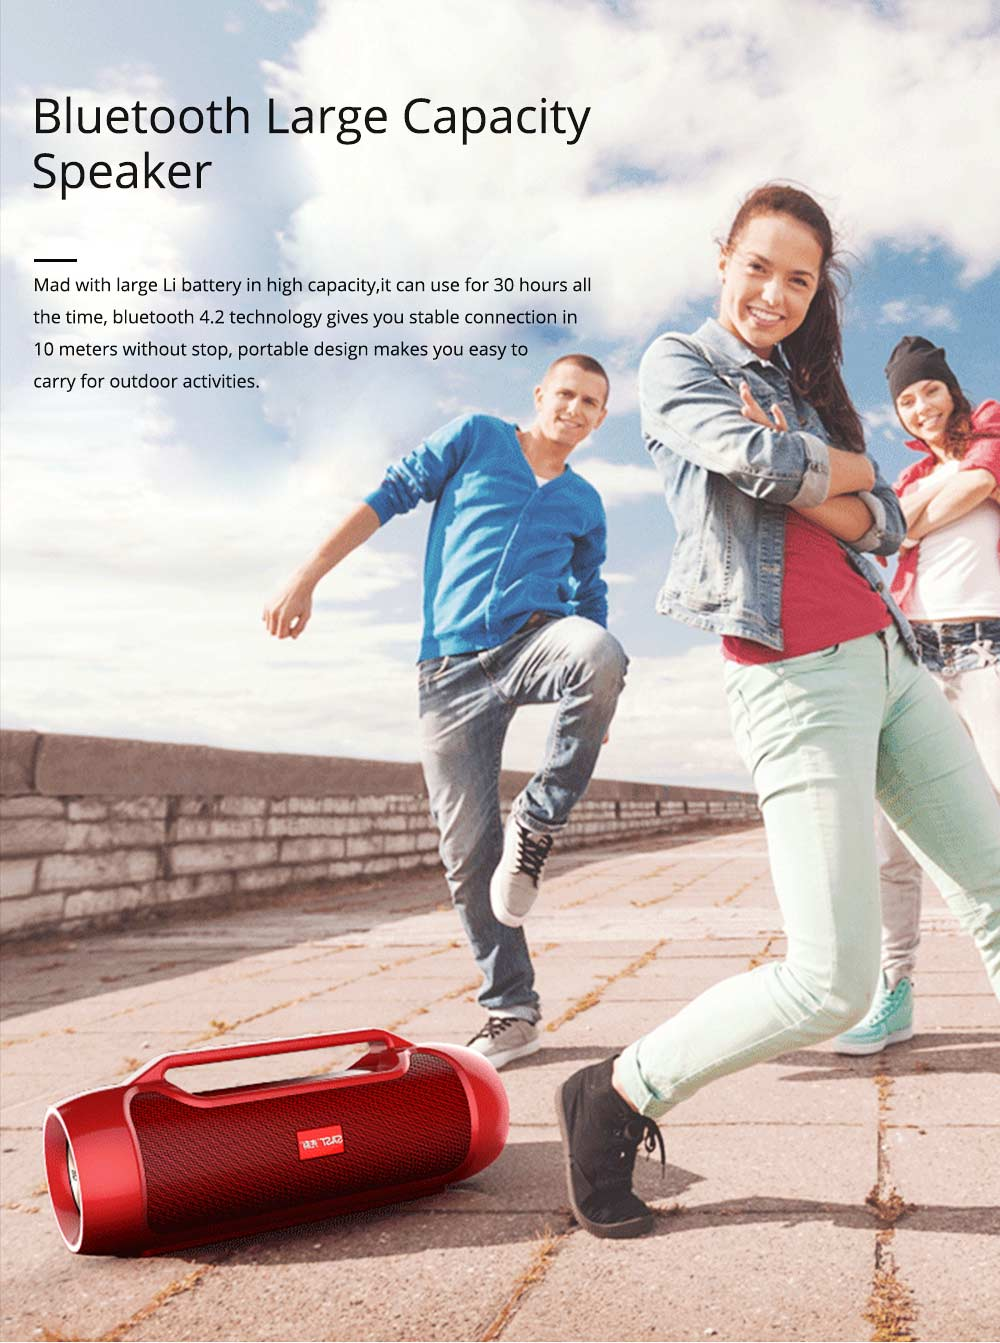 Bluetooth Speaker for Rapper, Dancer, Singer, Portable Brass with High Quality Sound Speaker, Double Horn Large Battery Speaker 0